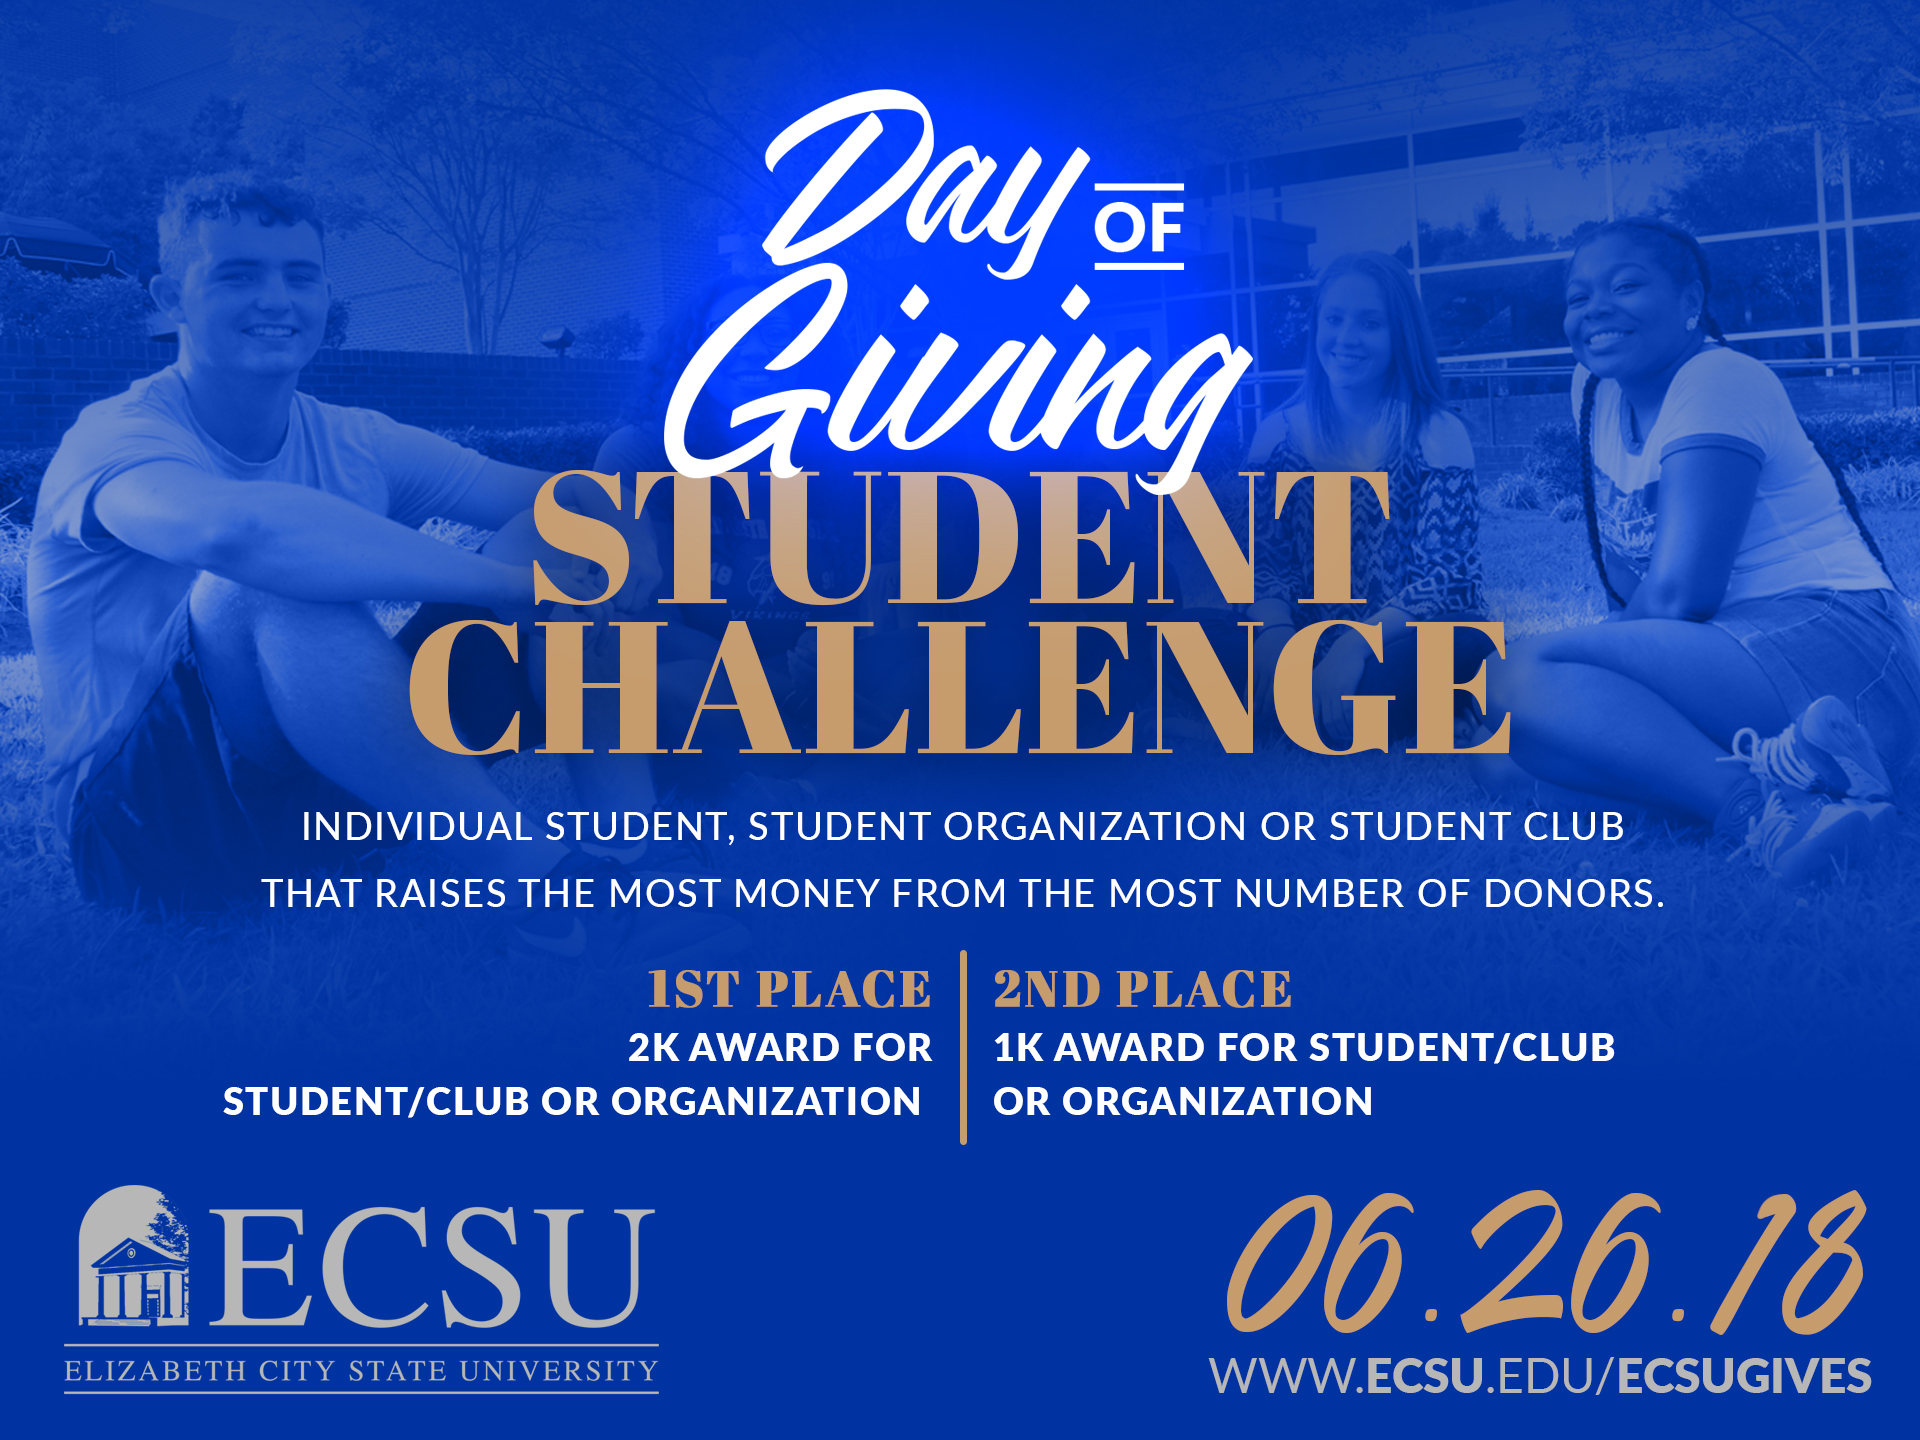 Ecsu day of giving student challenge5